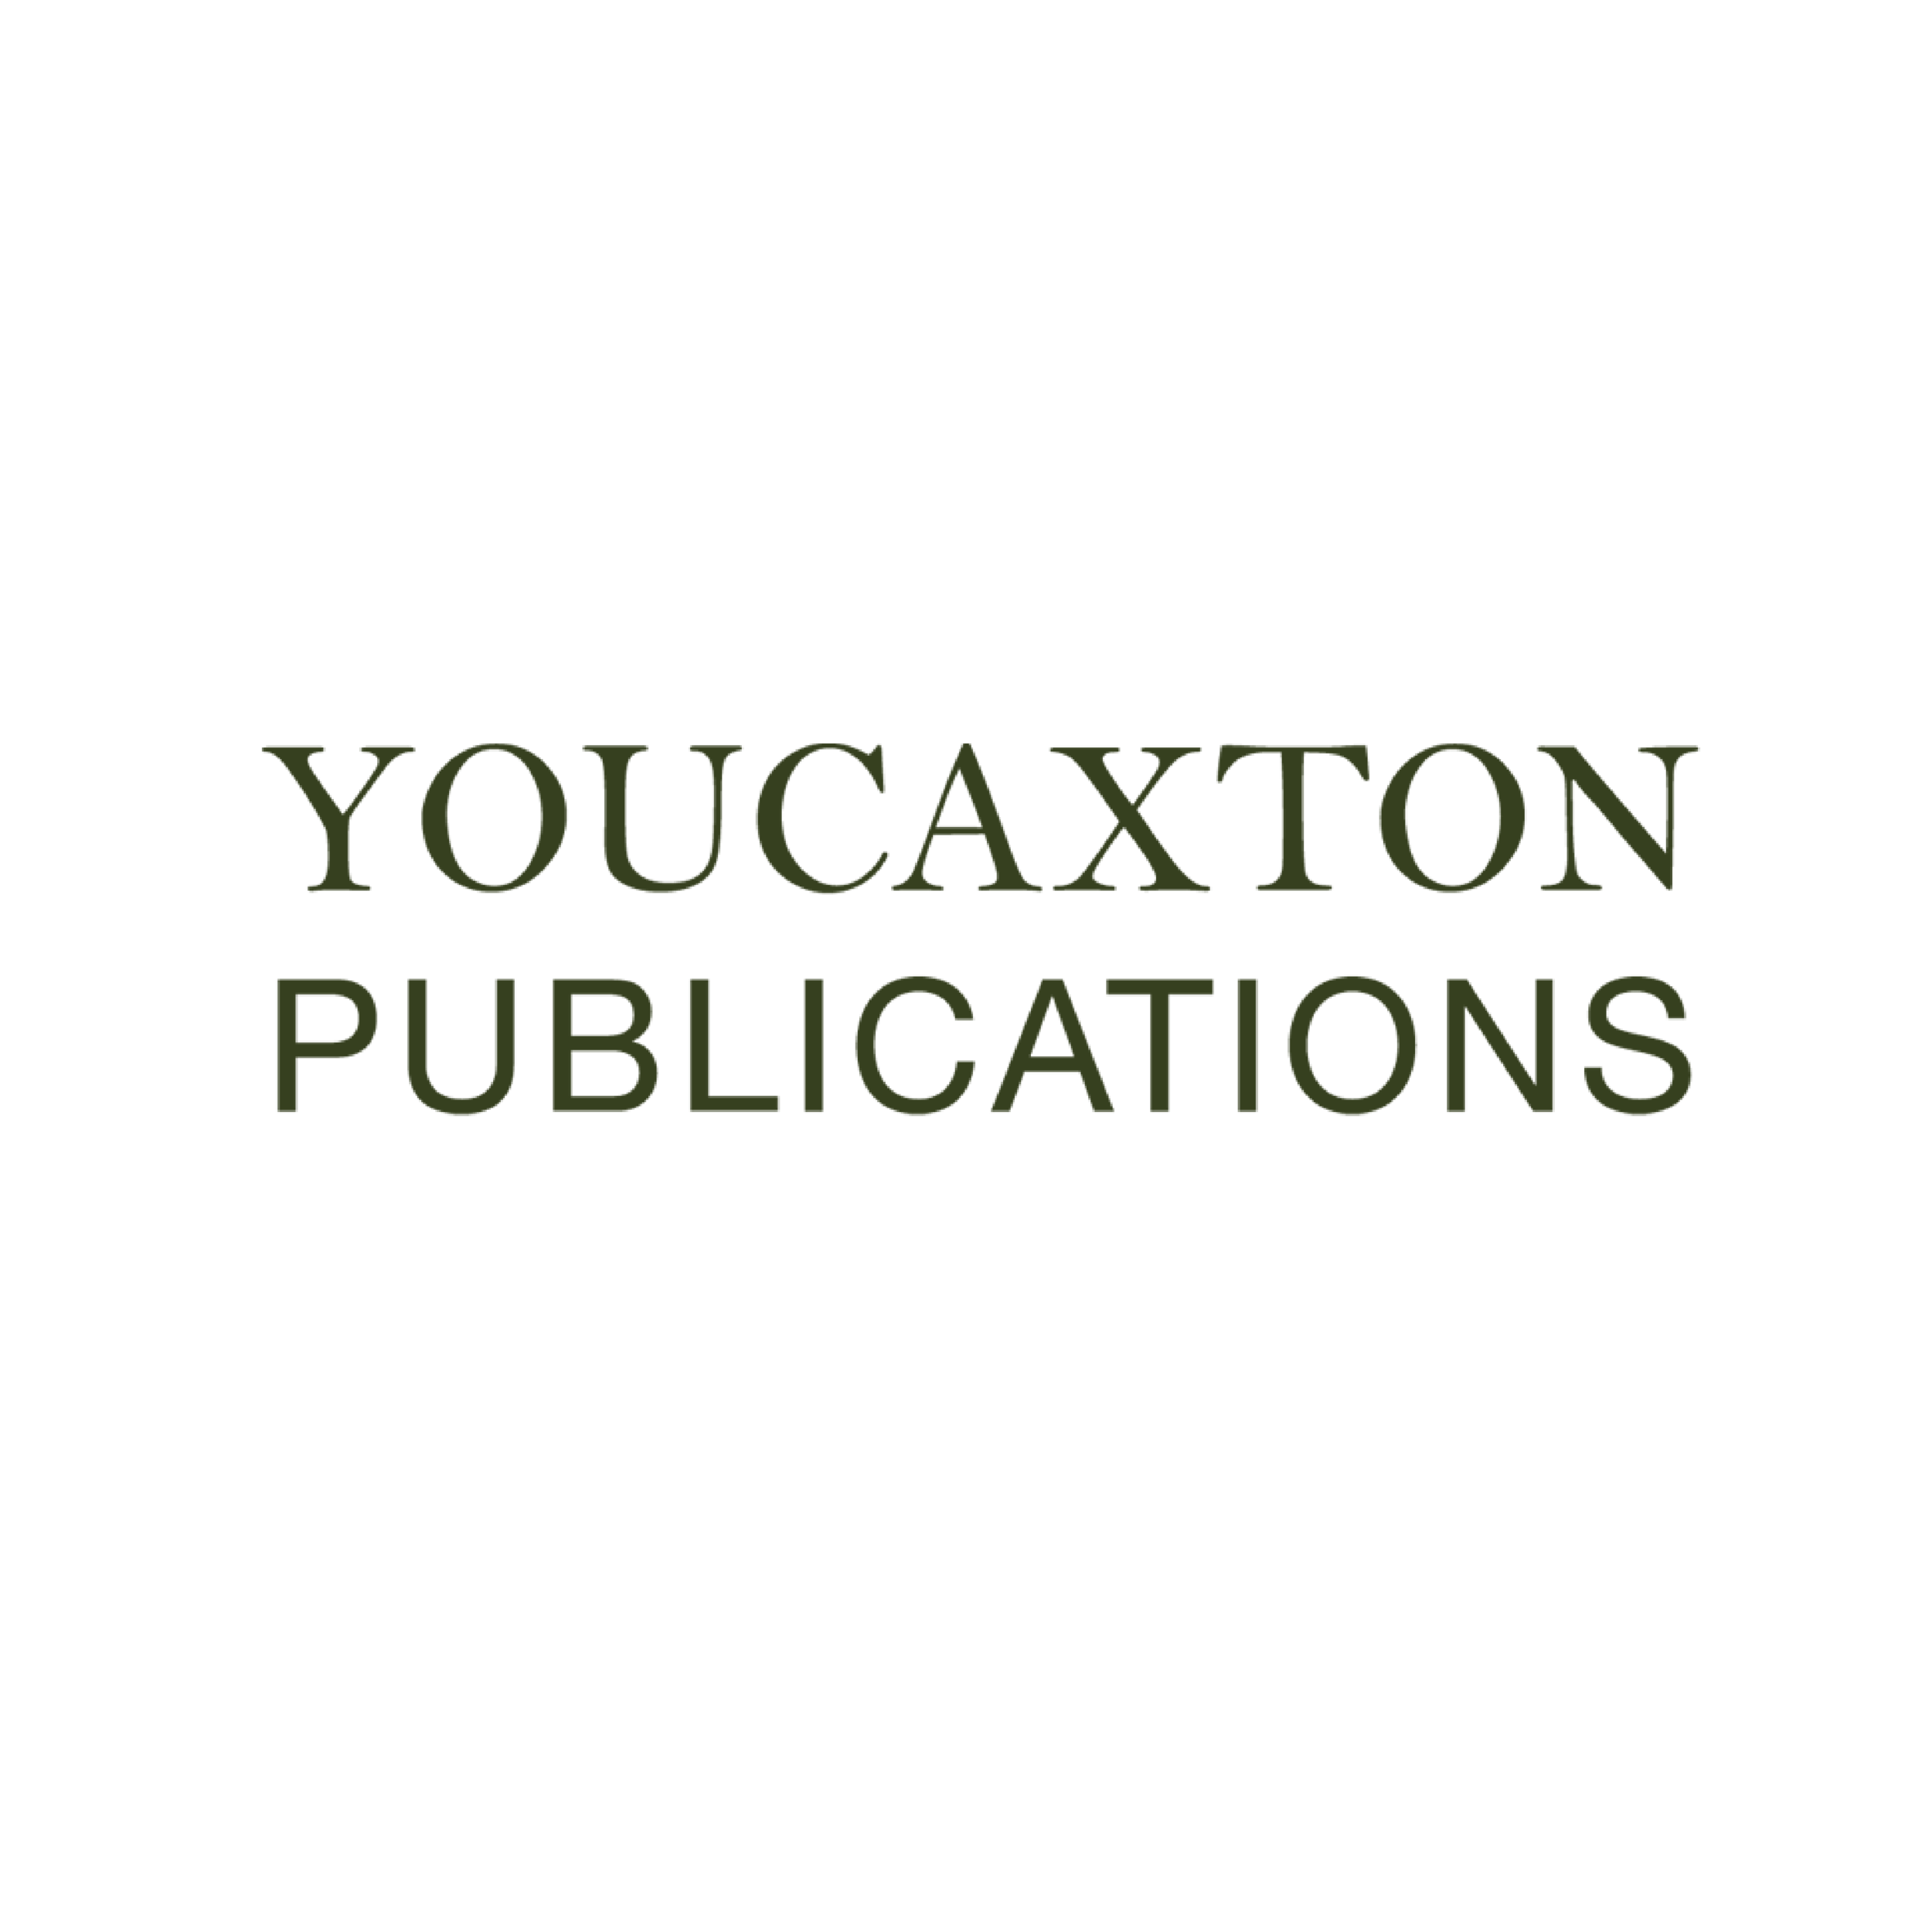 YouCaxton are unique professional writers at the heart of a professional editorial and publication service.  YouCaxton Publications have done an excellent job in supporting with the 'official' elements of the book from generating ISBN codes and data requirements to editing and online publishing support.   www.youcaxton.co.uk